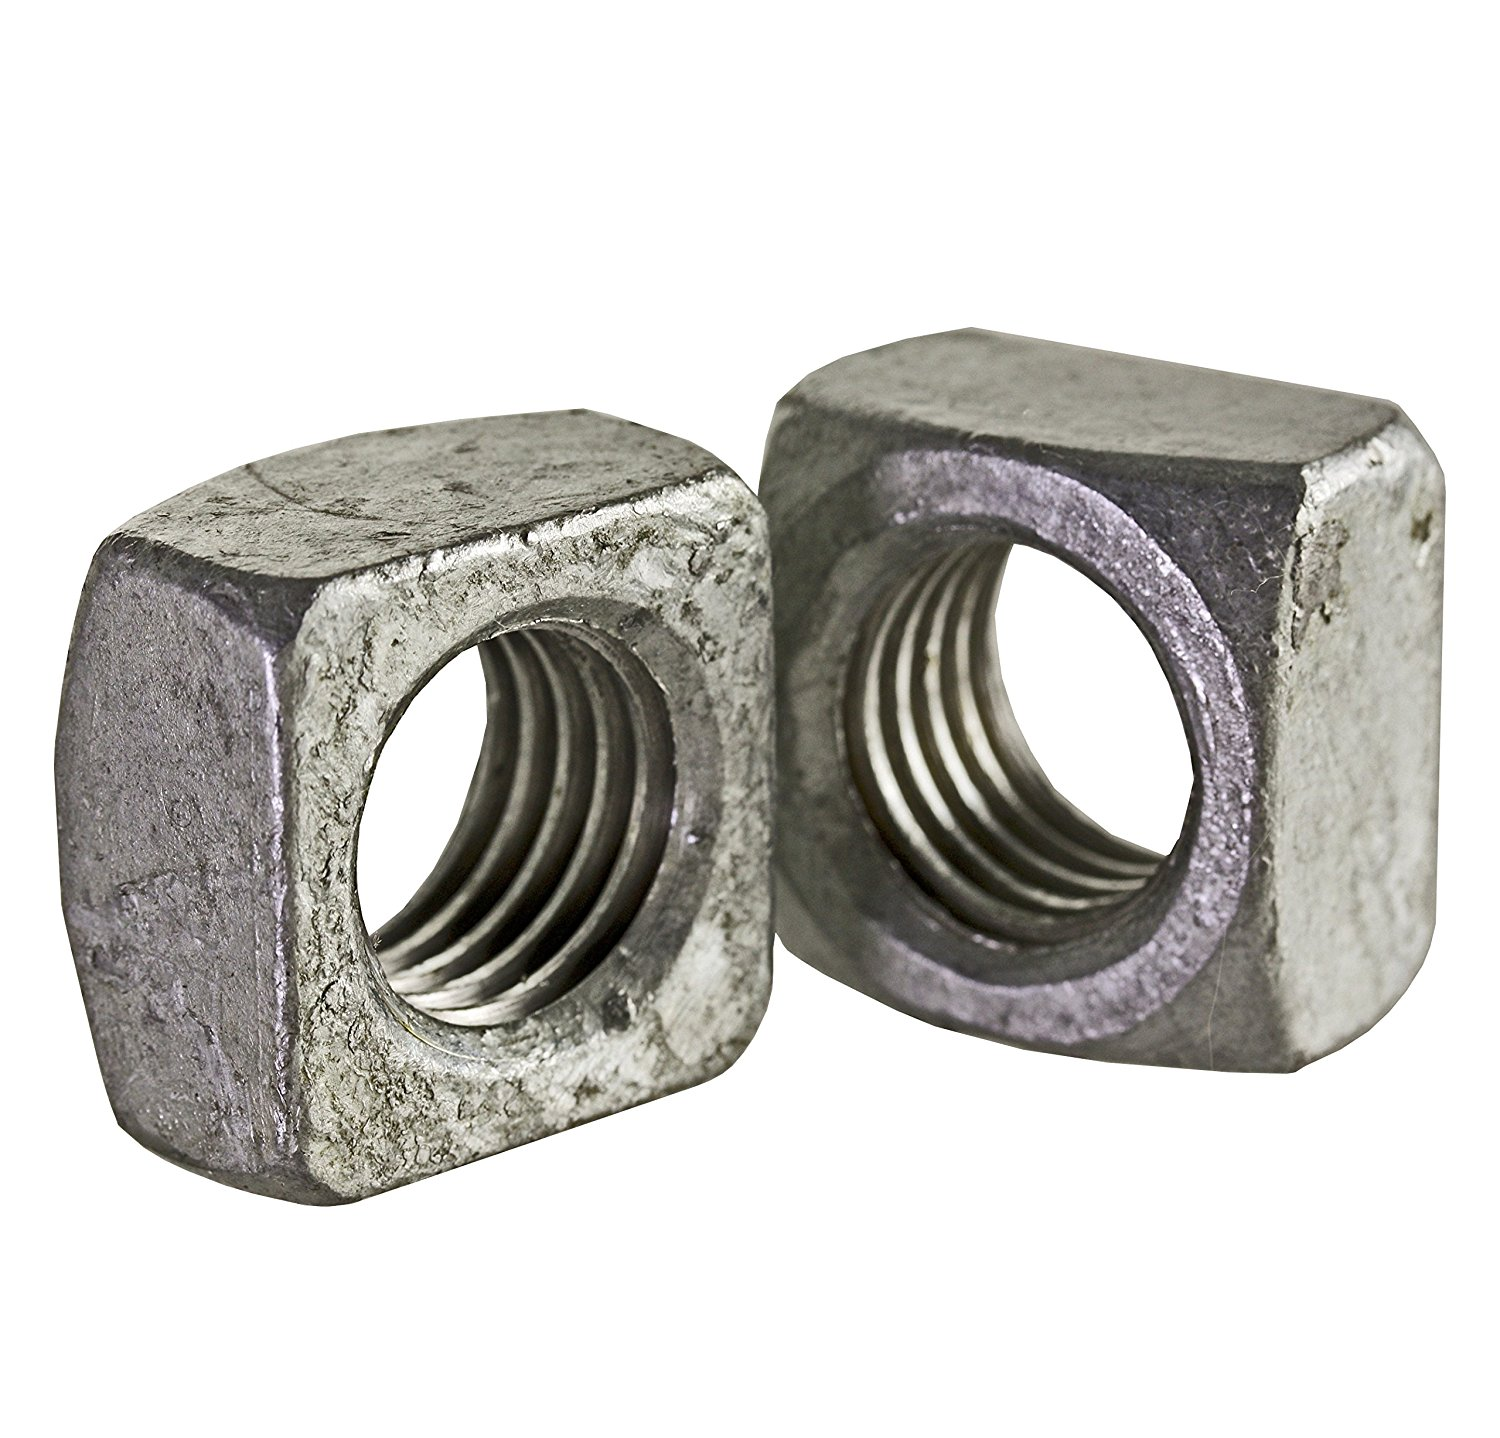 """Steel Square Nut, Hot-Dipped Galvanized Finish, Grade 2, Meets ASME B18.2.2, 7/8""""-9 Thread Size, 1-5/16"""" Width Across Flats, 49/64"""" Thick (Pack of 5)"""